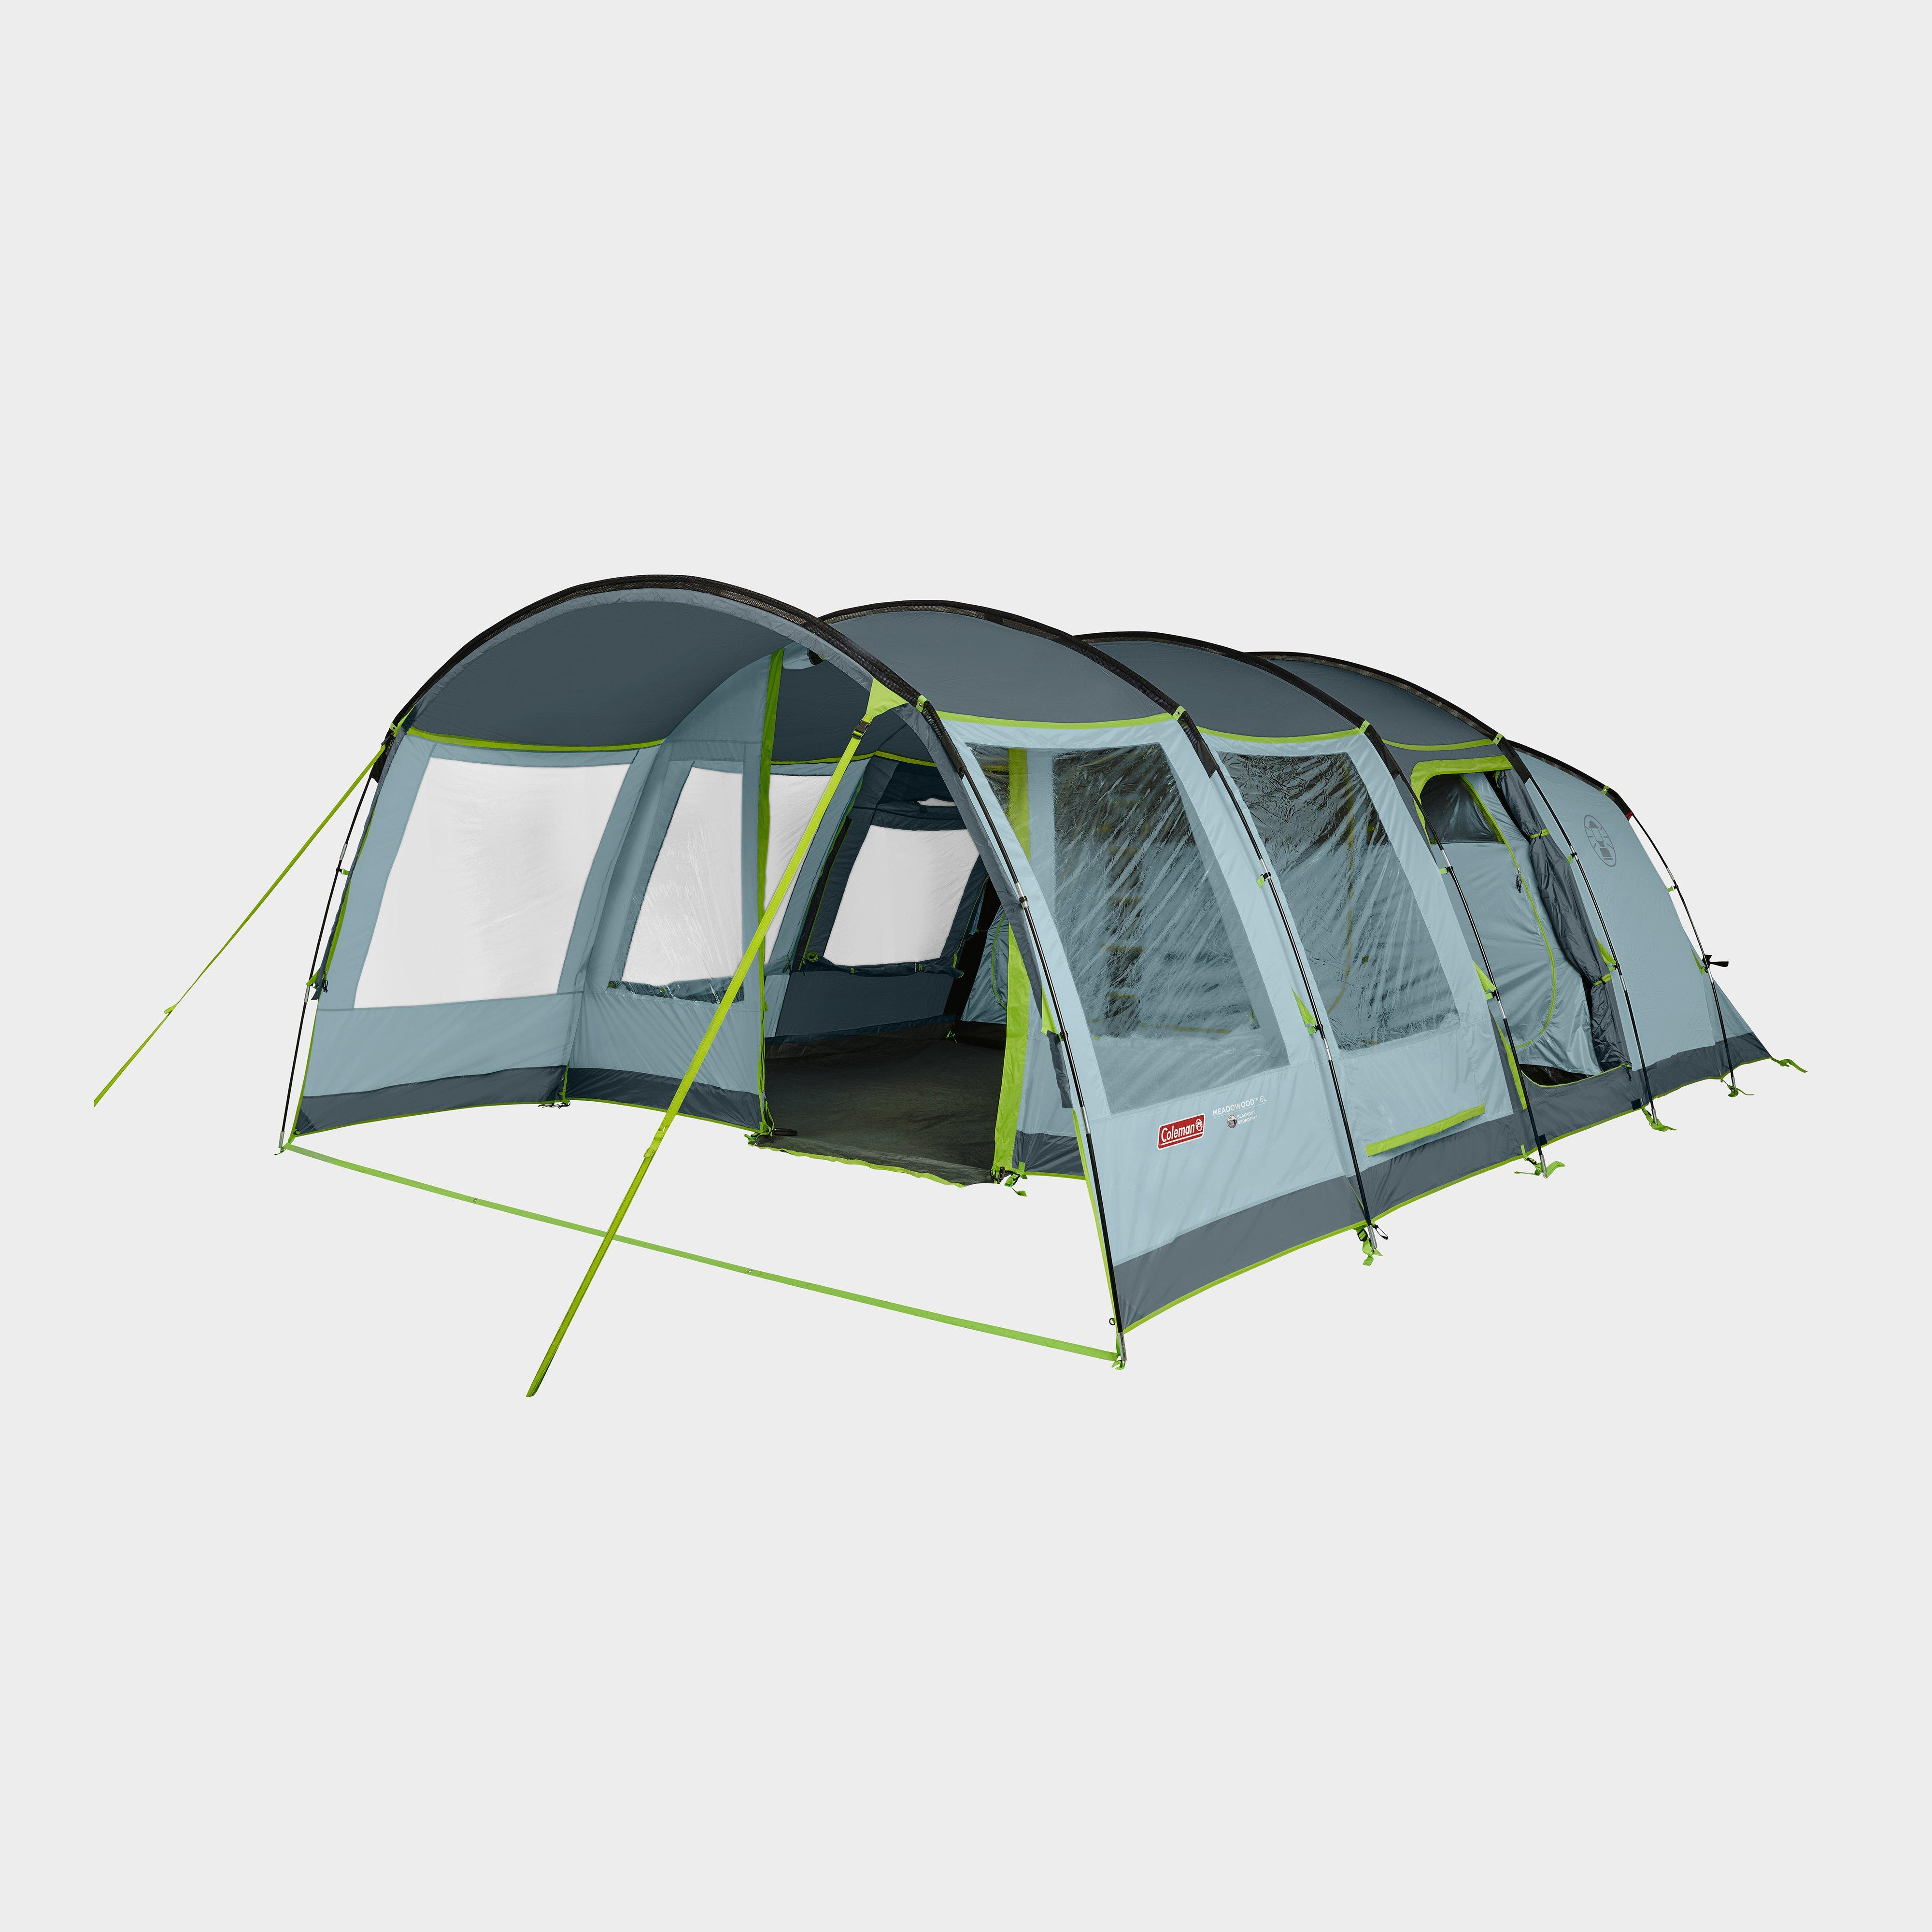 Coleman Meadowood 6 Person Large Tent With Blackout Bedrooms - Blue/Blue, Blue